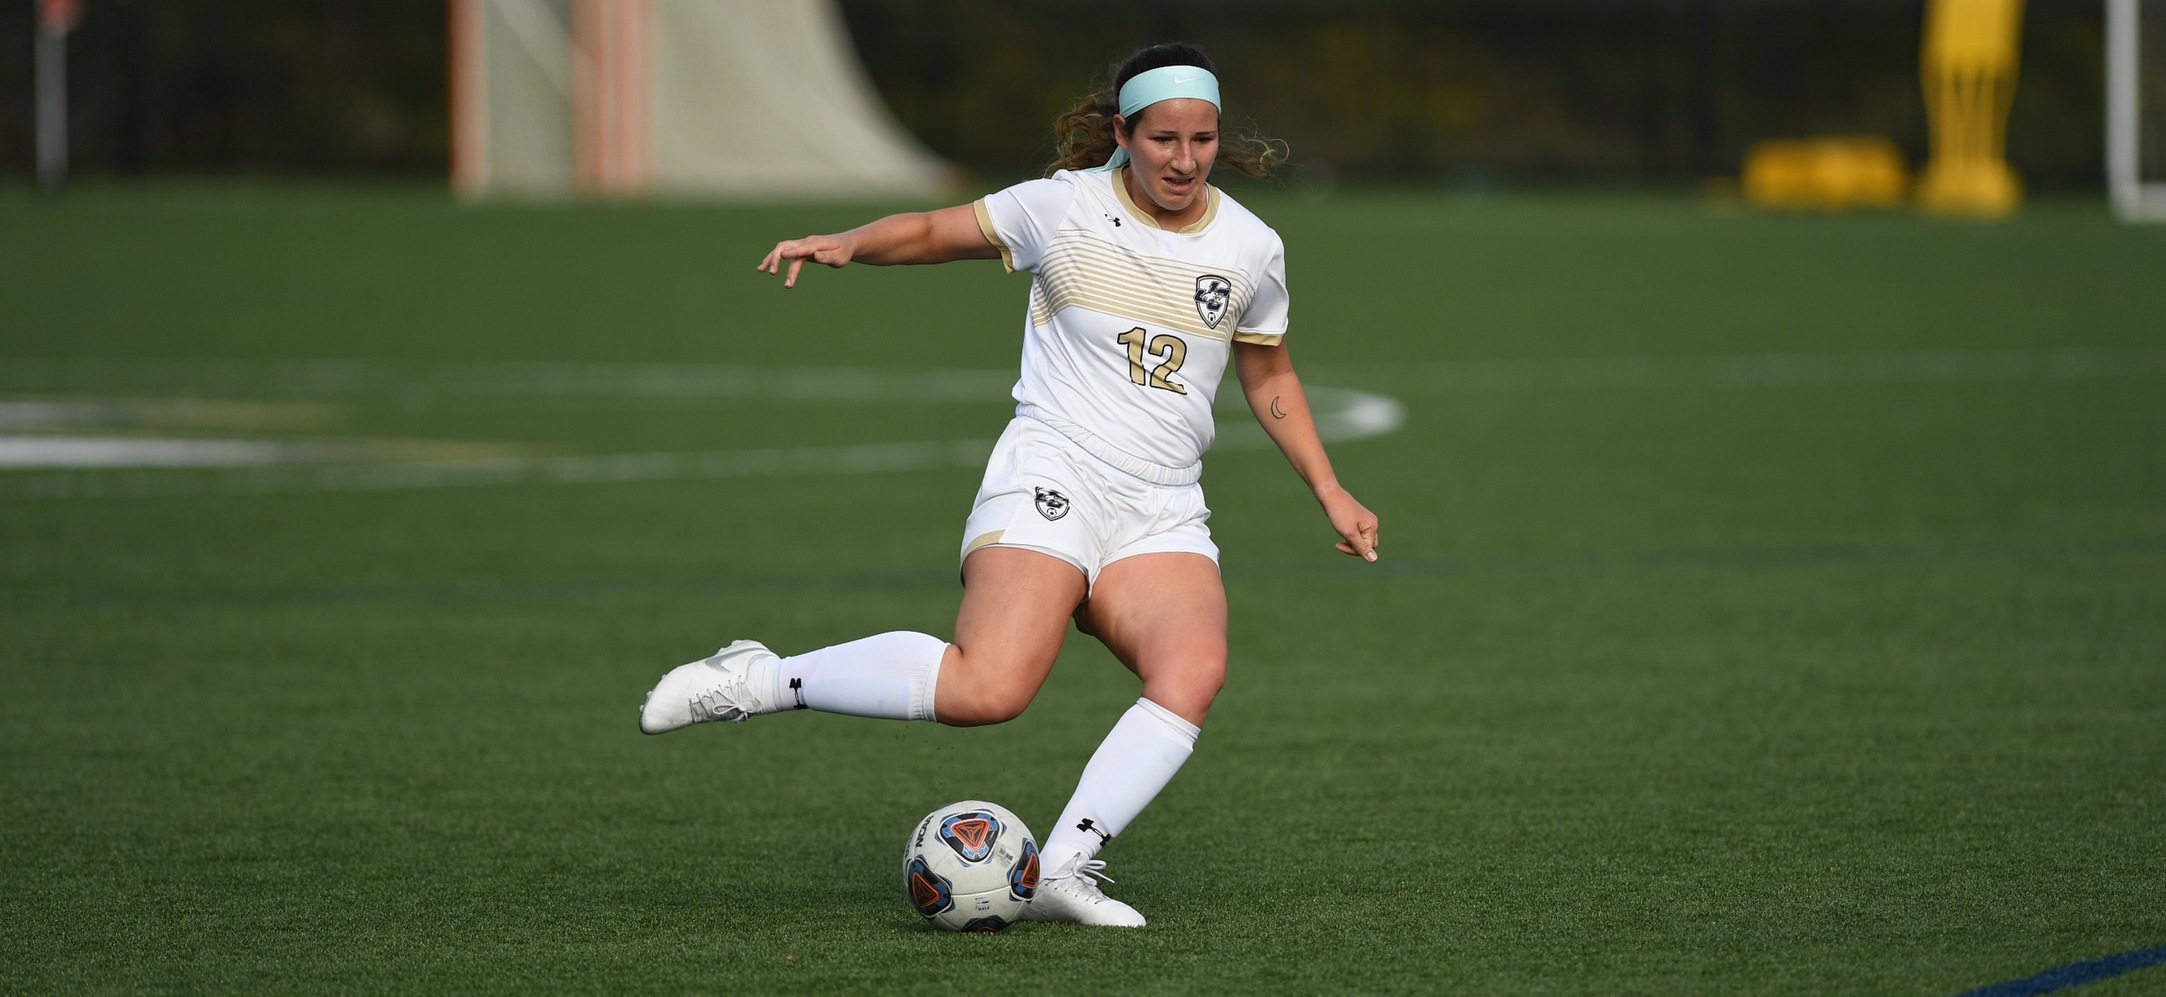 Emma Moreland assisted both goals in the Eagles, 2-1 win over Penn College.